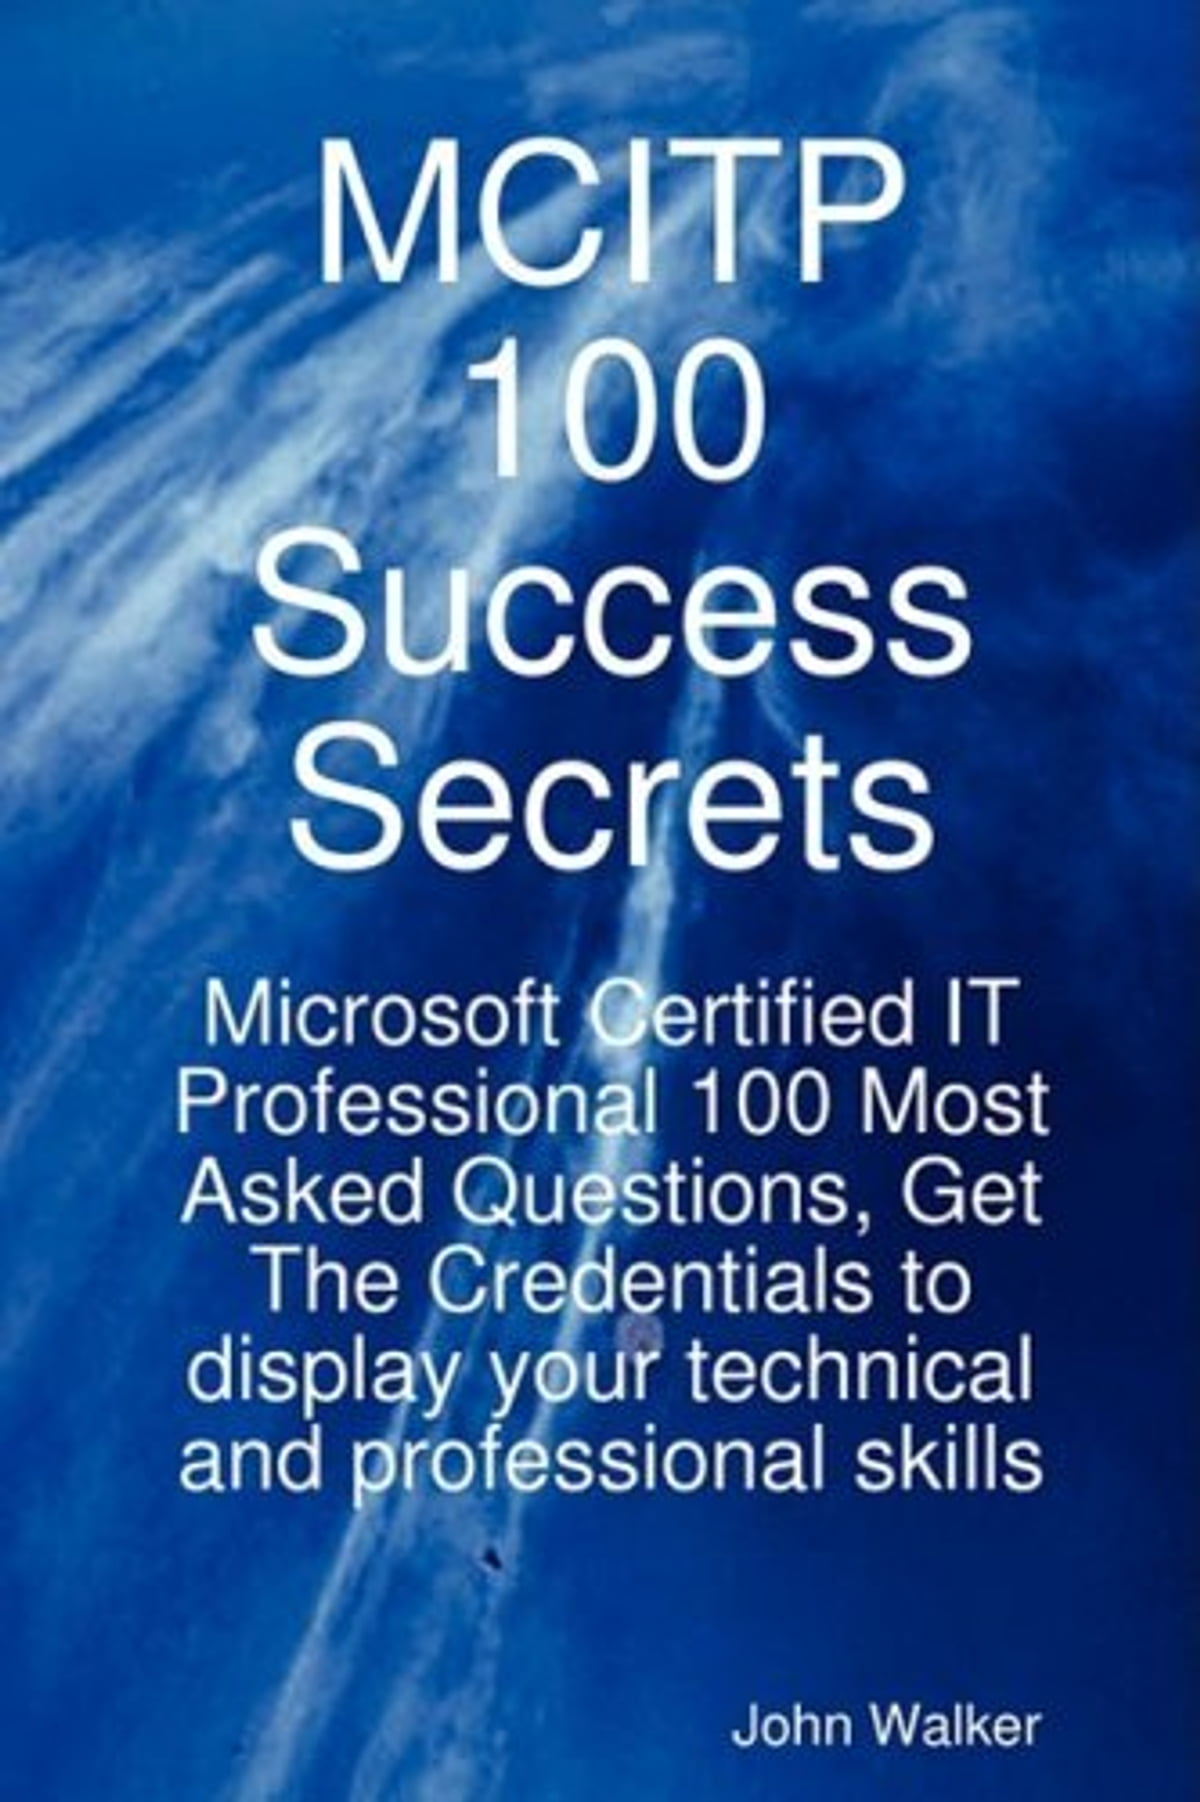 MCITP 100 Success Secrets Microsoft Certified IT Professional 100 Most Asked Questions Get The Credentials To Display Your Technical And